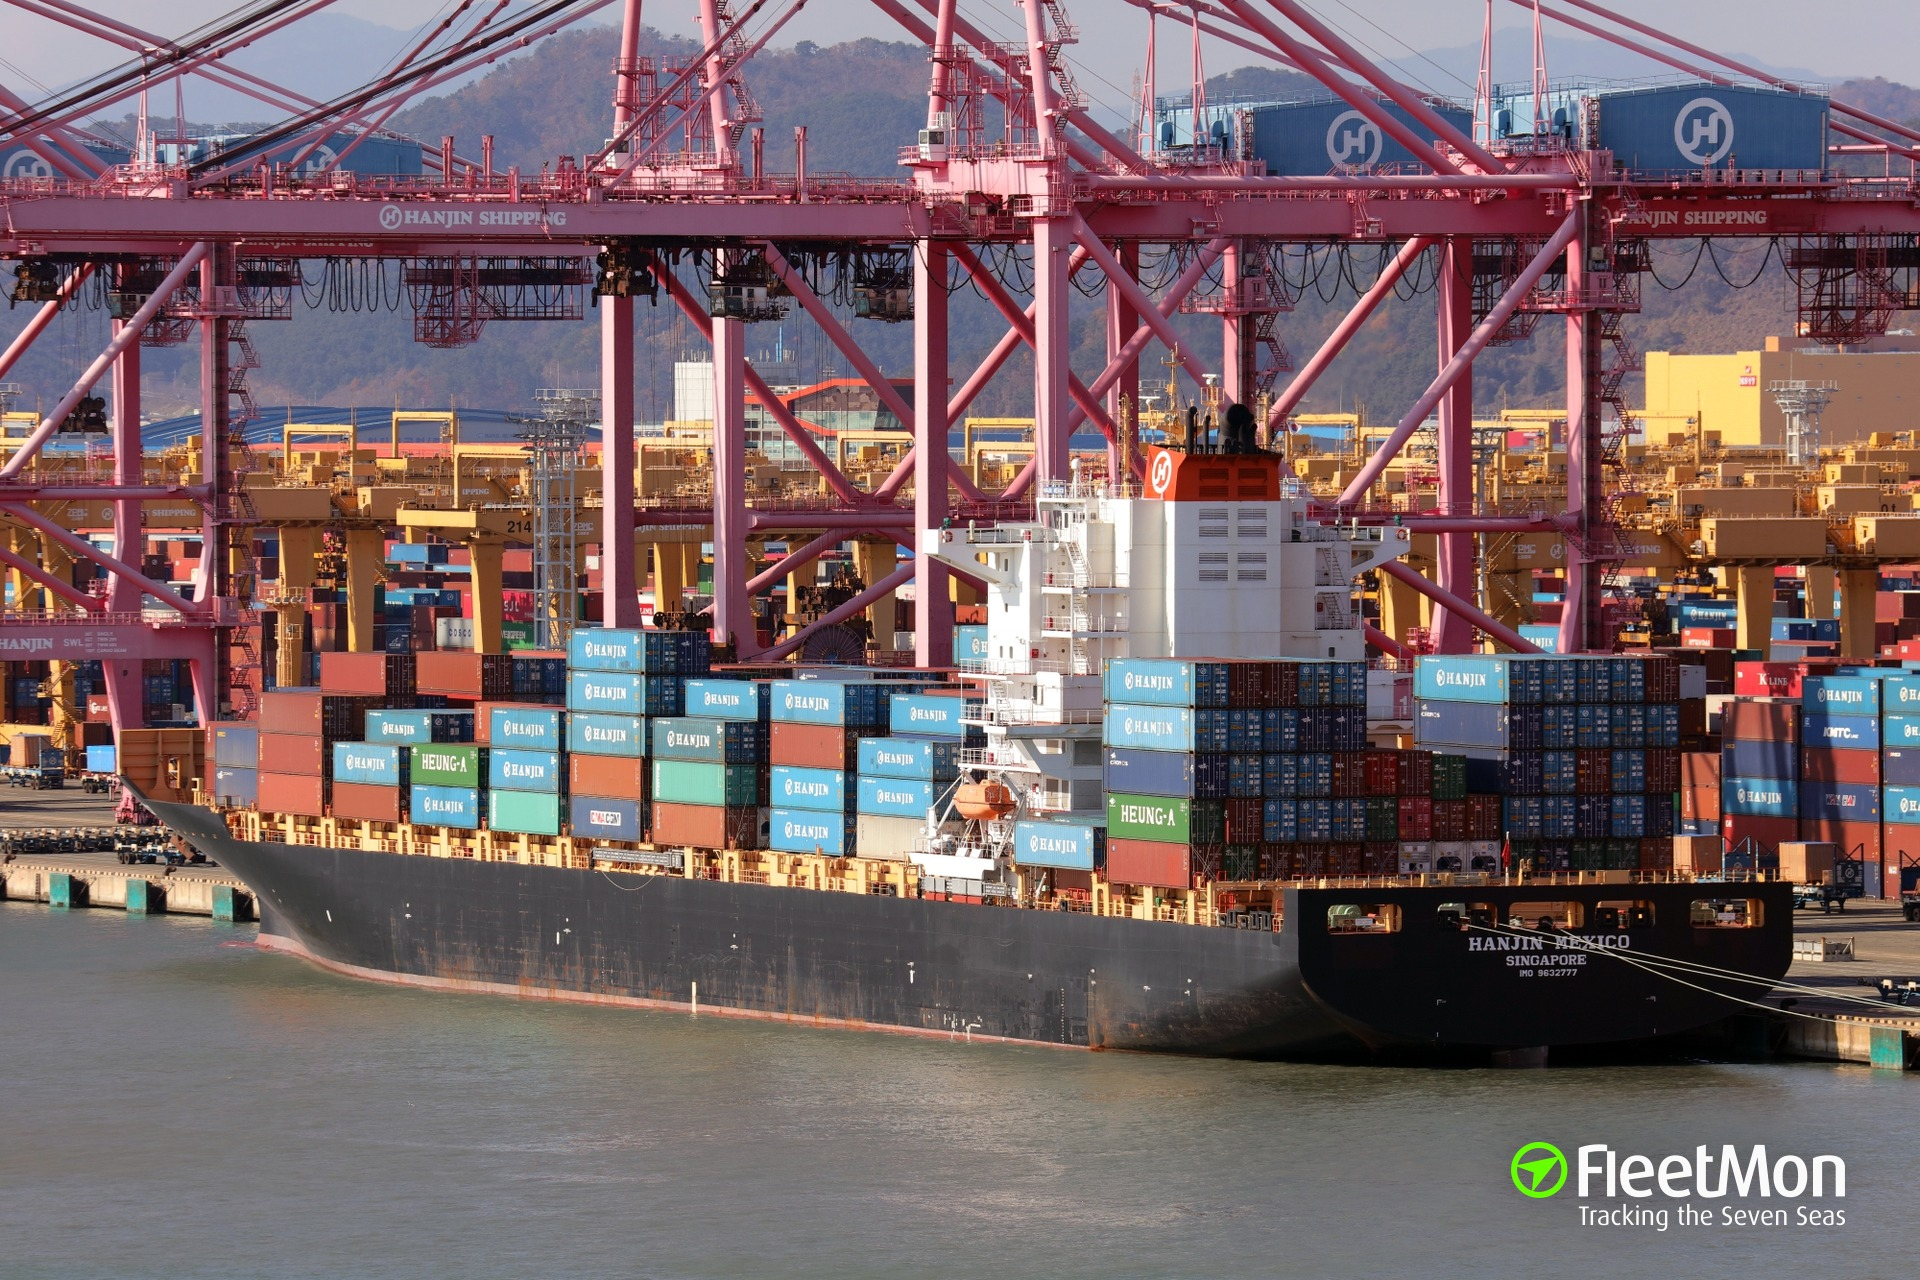 Hanjin Shipping in trouble: ships arrested, refused entry, halted